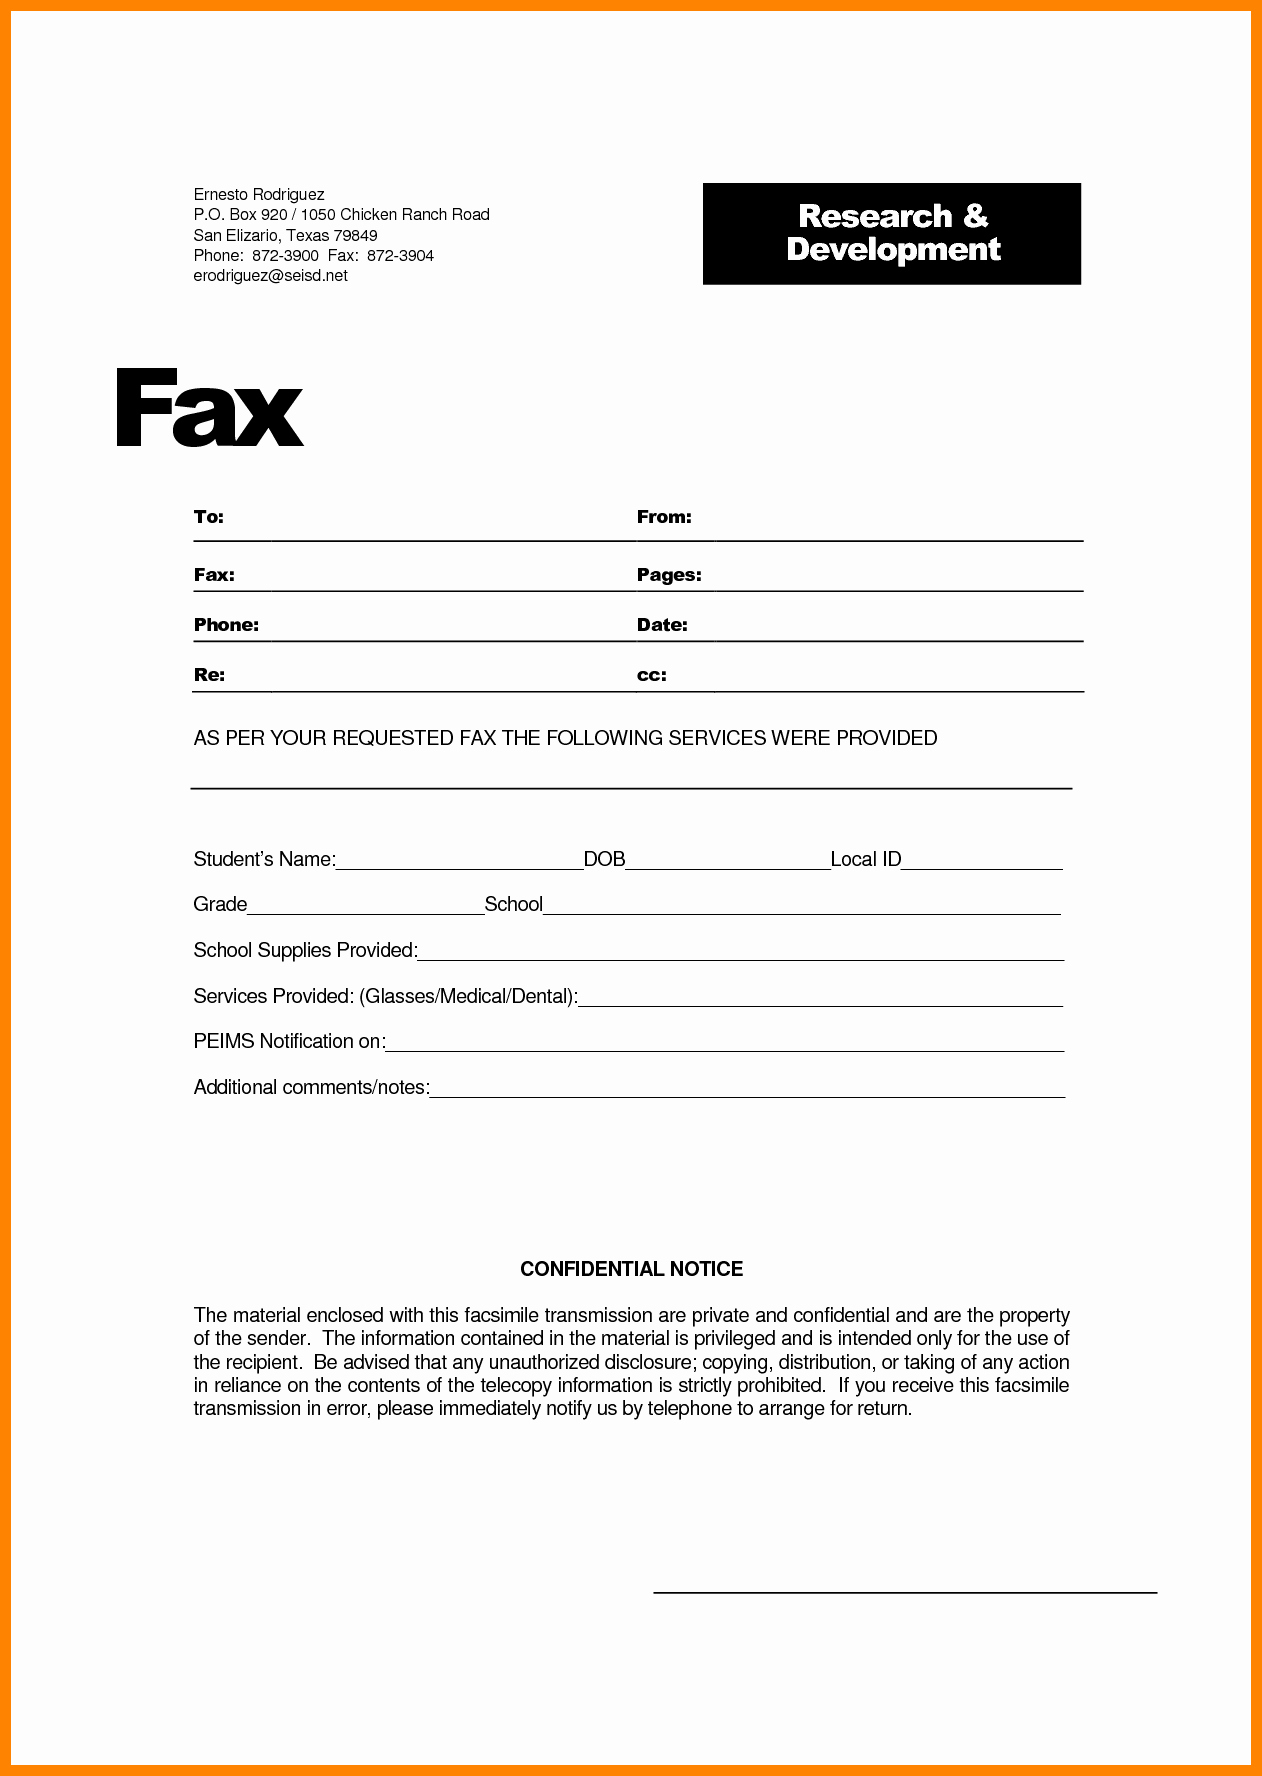 Hipaa Fax Cover Sheet Unique Hipaa Privacy Statement Cover Sheet